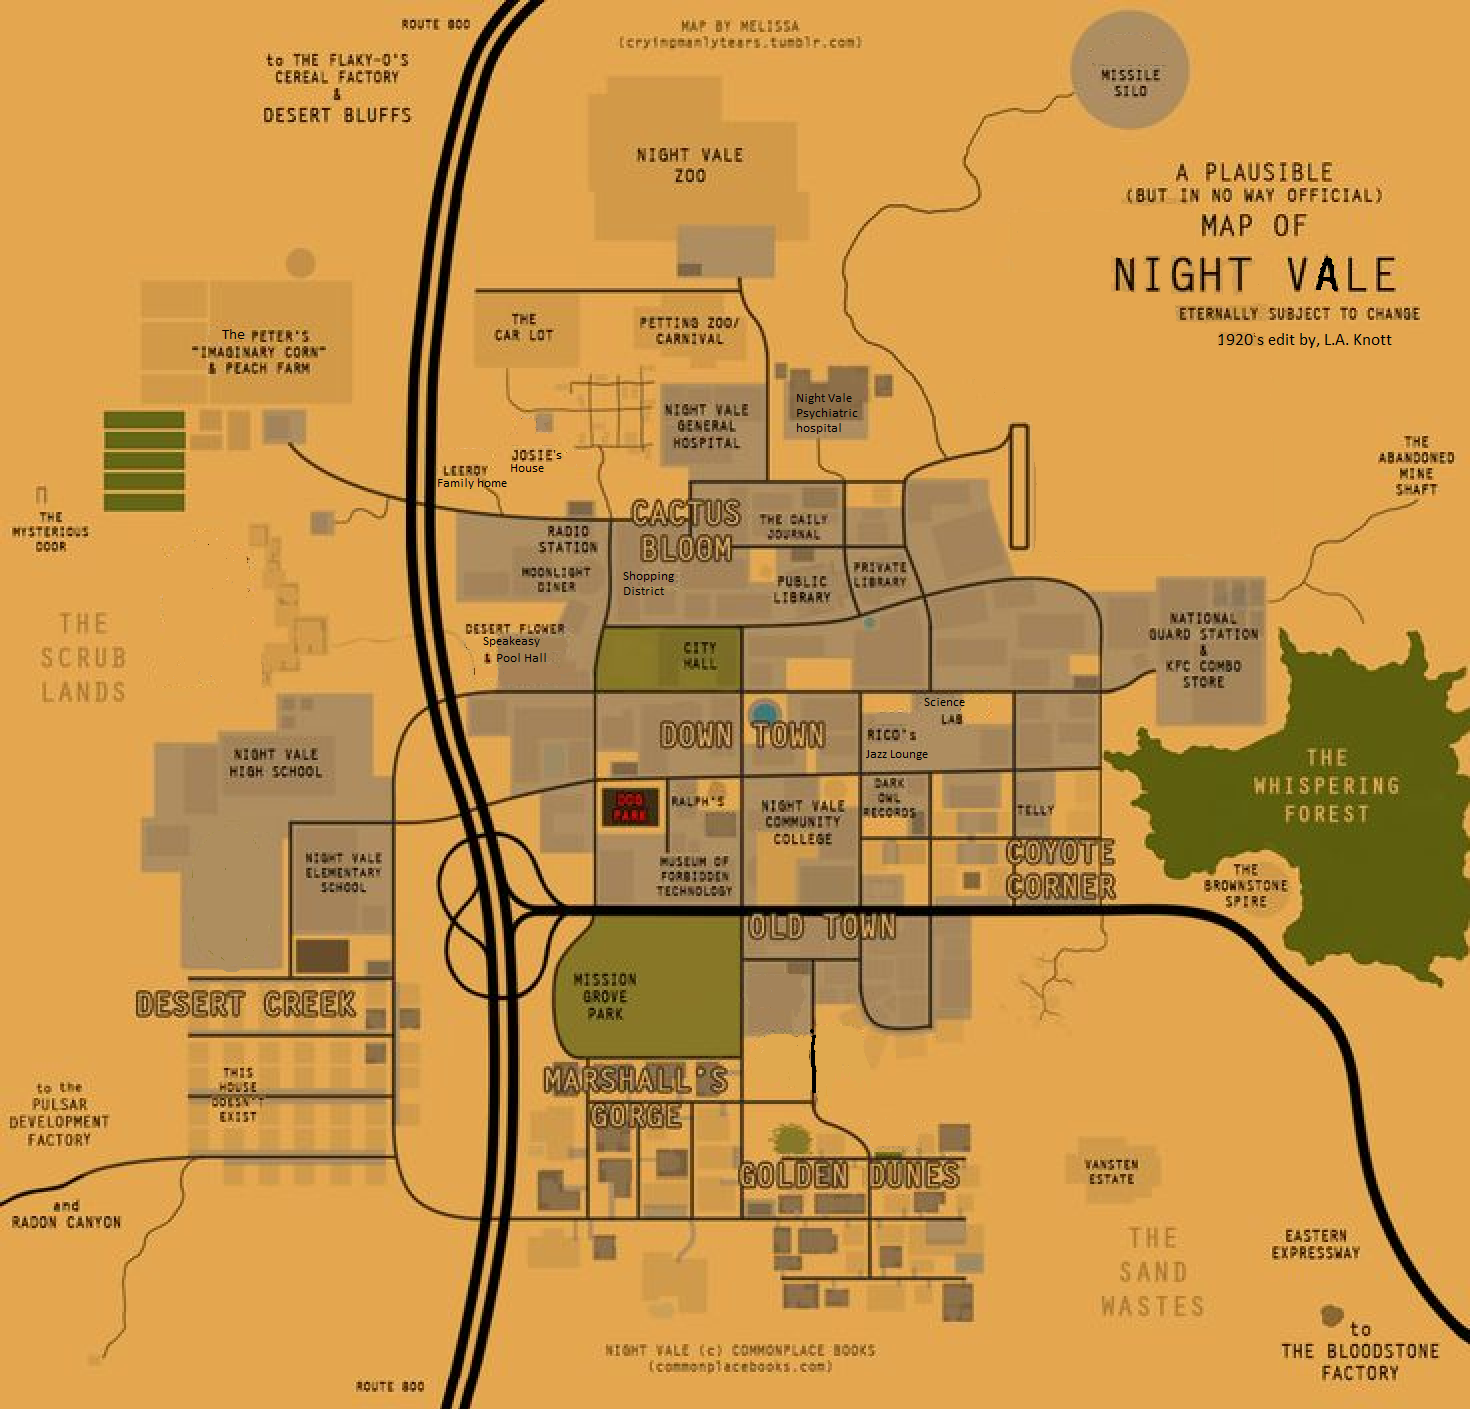 Night_vale_1920s_map.png